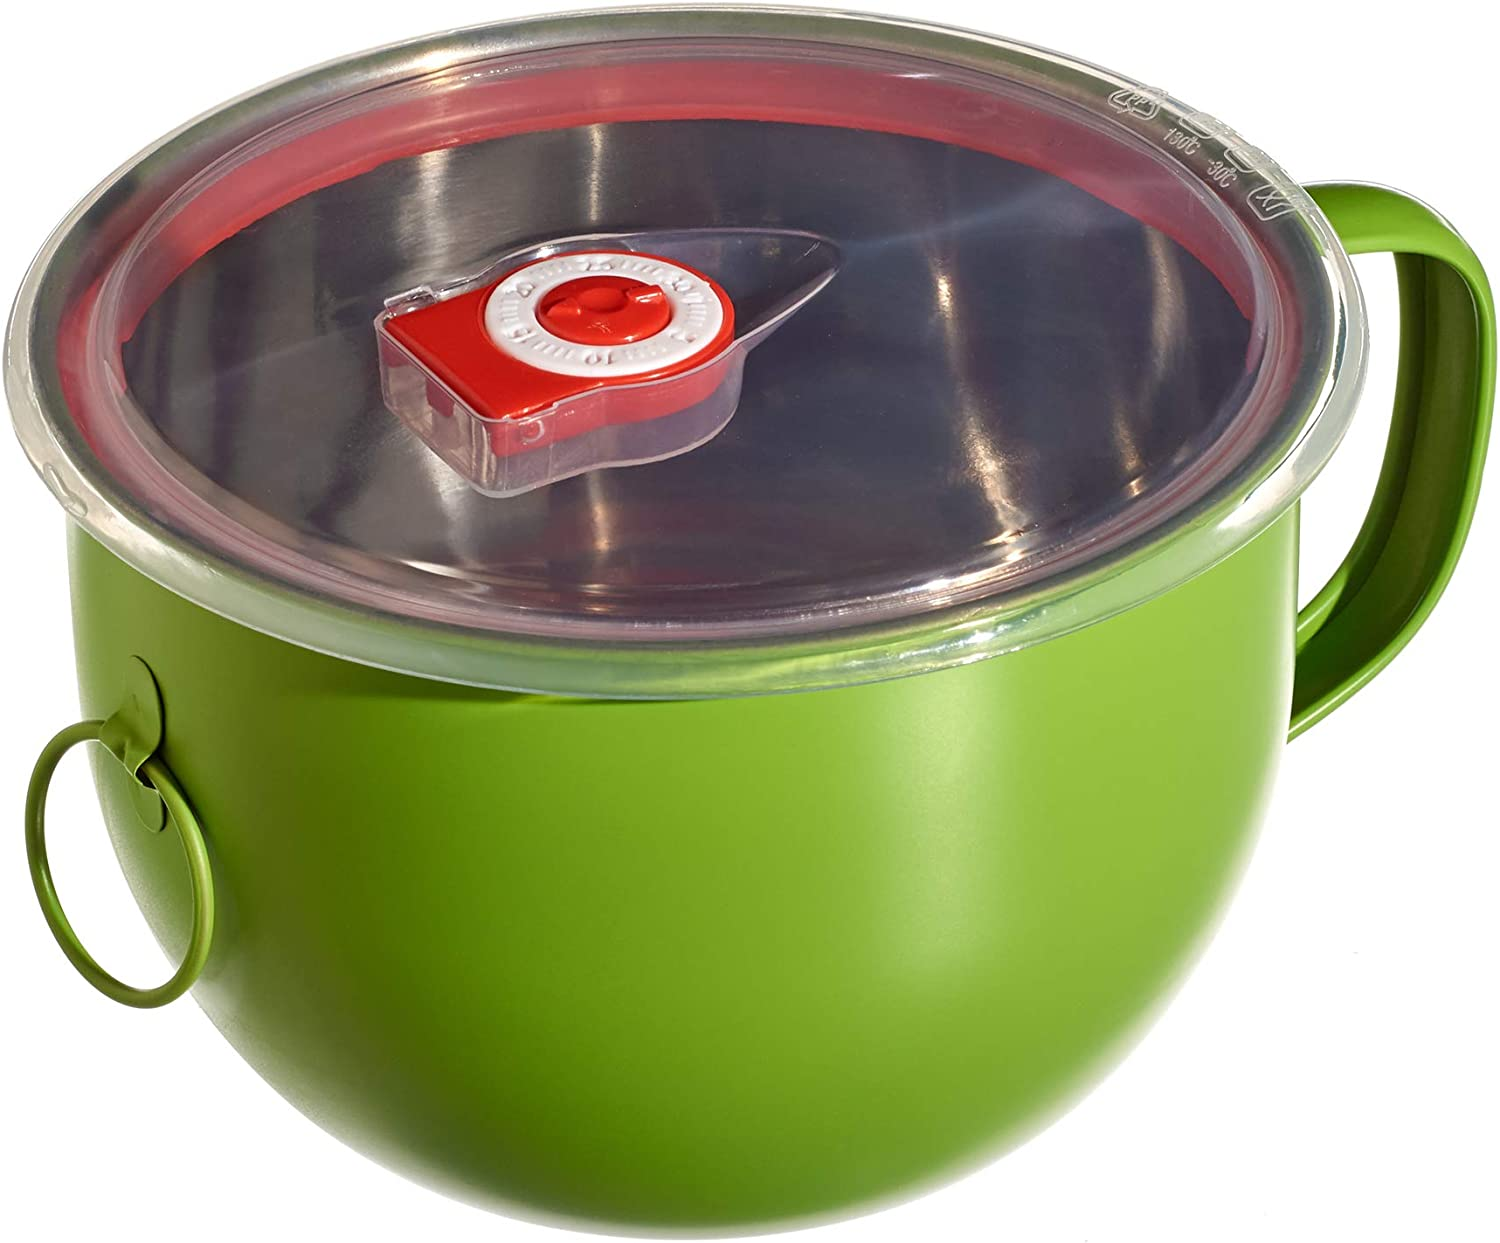 Green. Purple Bird International Stainless Steel Bowl with Handle and Leakproof Lid. 44 Ounce.Salad Bowl, Food Storage, Noodles, Soup, Mixing, Batter Prep Bowl, Bento, Ramen Noodle Cooker